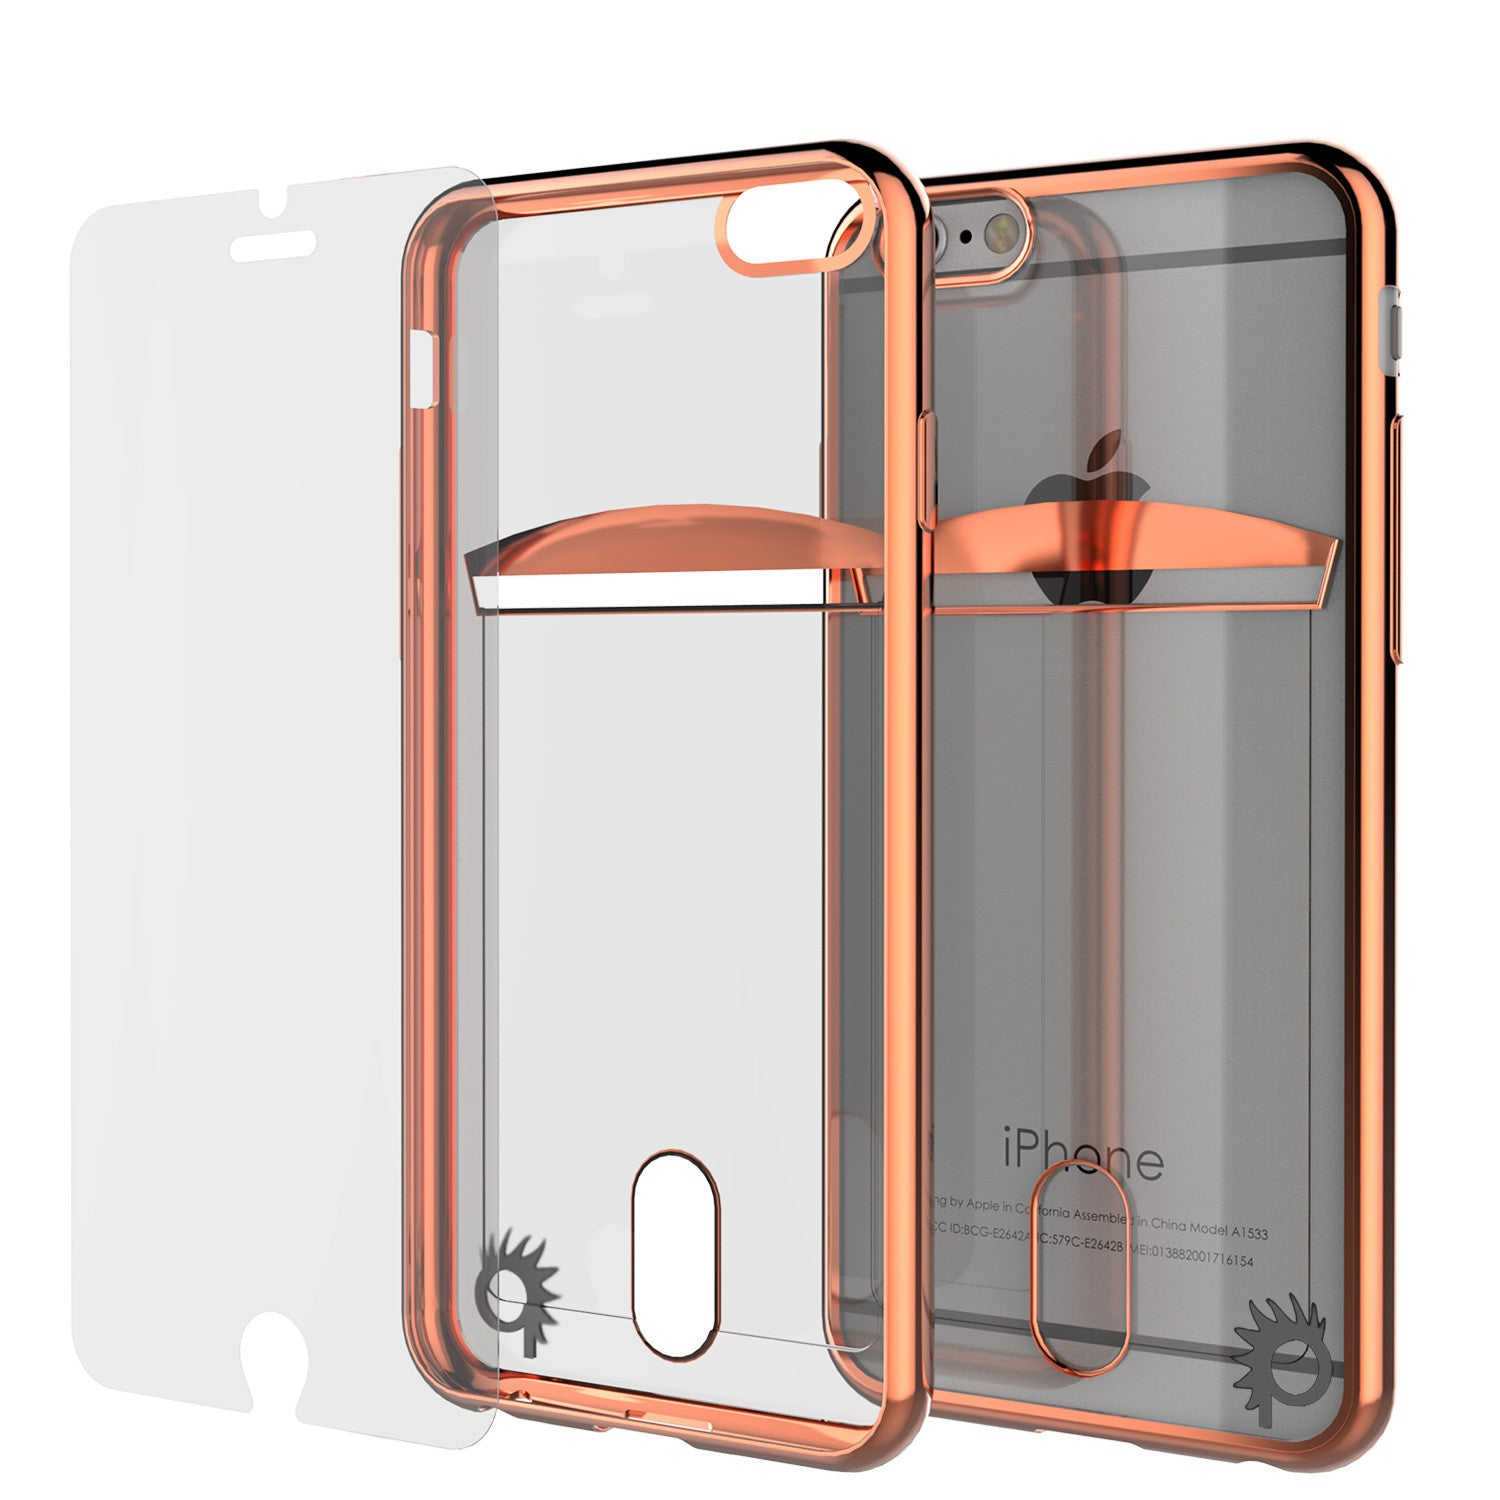 iPhone 6s+ Plus/6+ Plus Case, PUNKCASE® LUCID Rose Gold Series | Card Slot | SHIELD Screen Protector